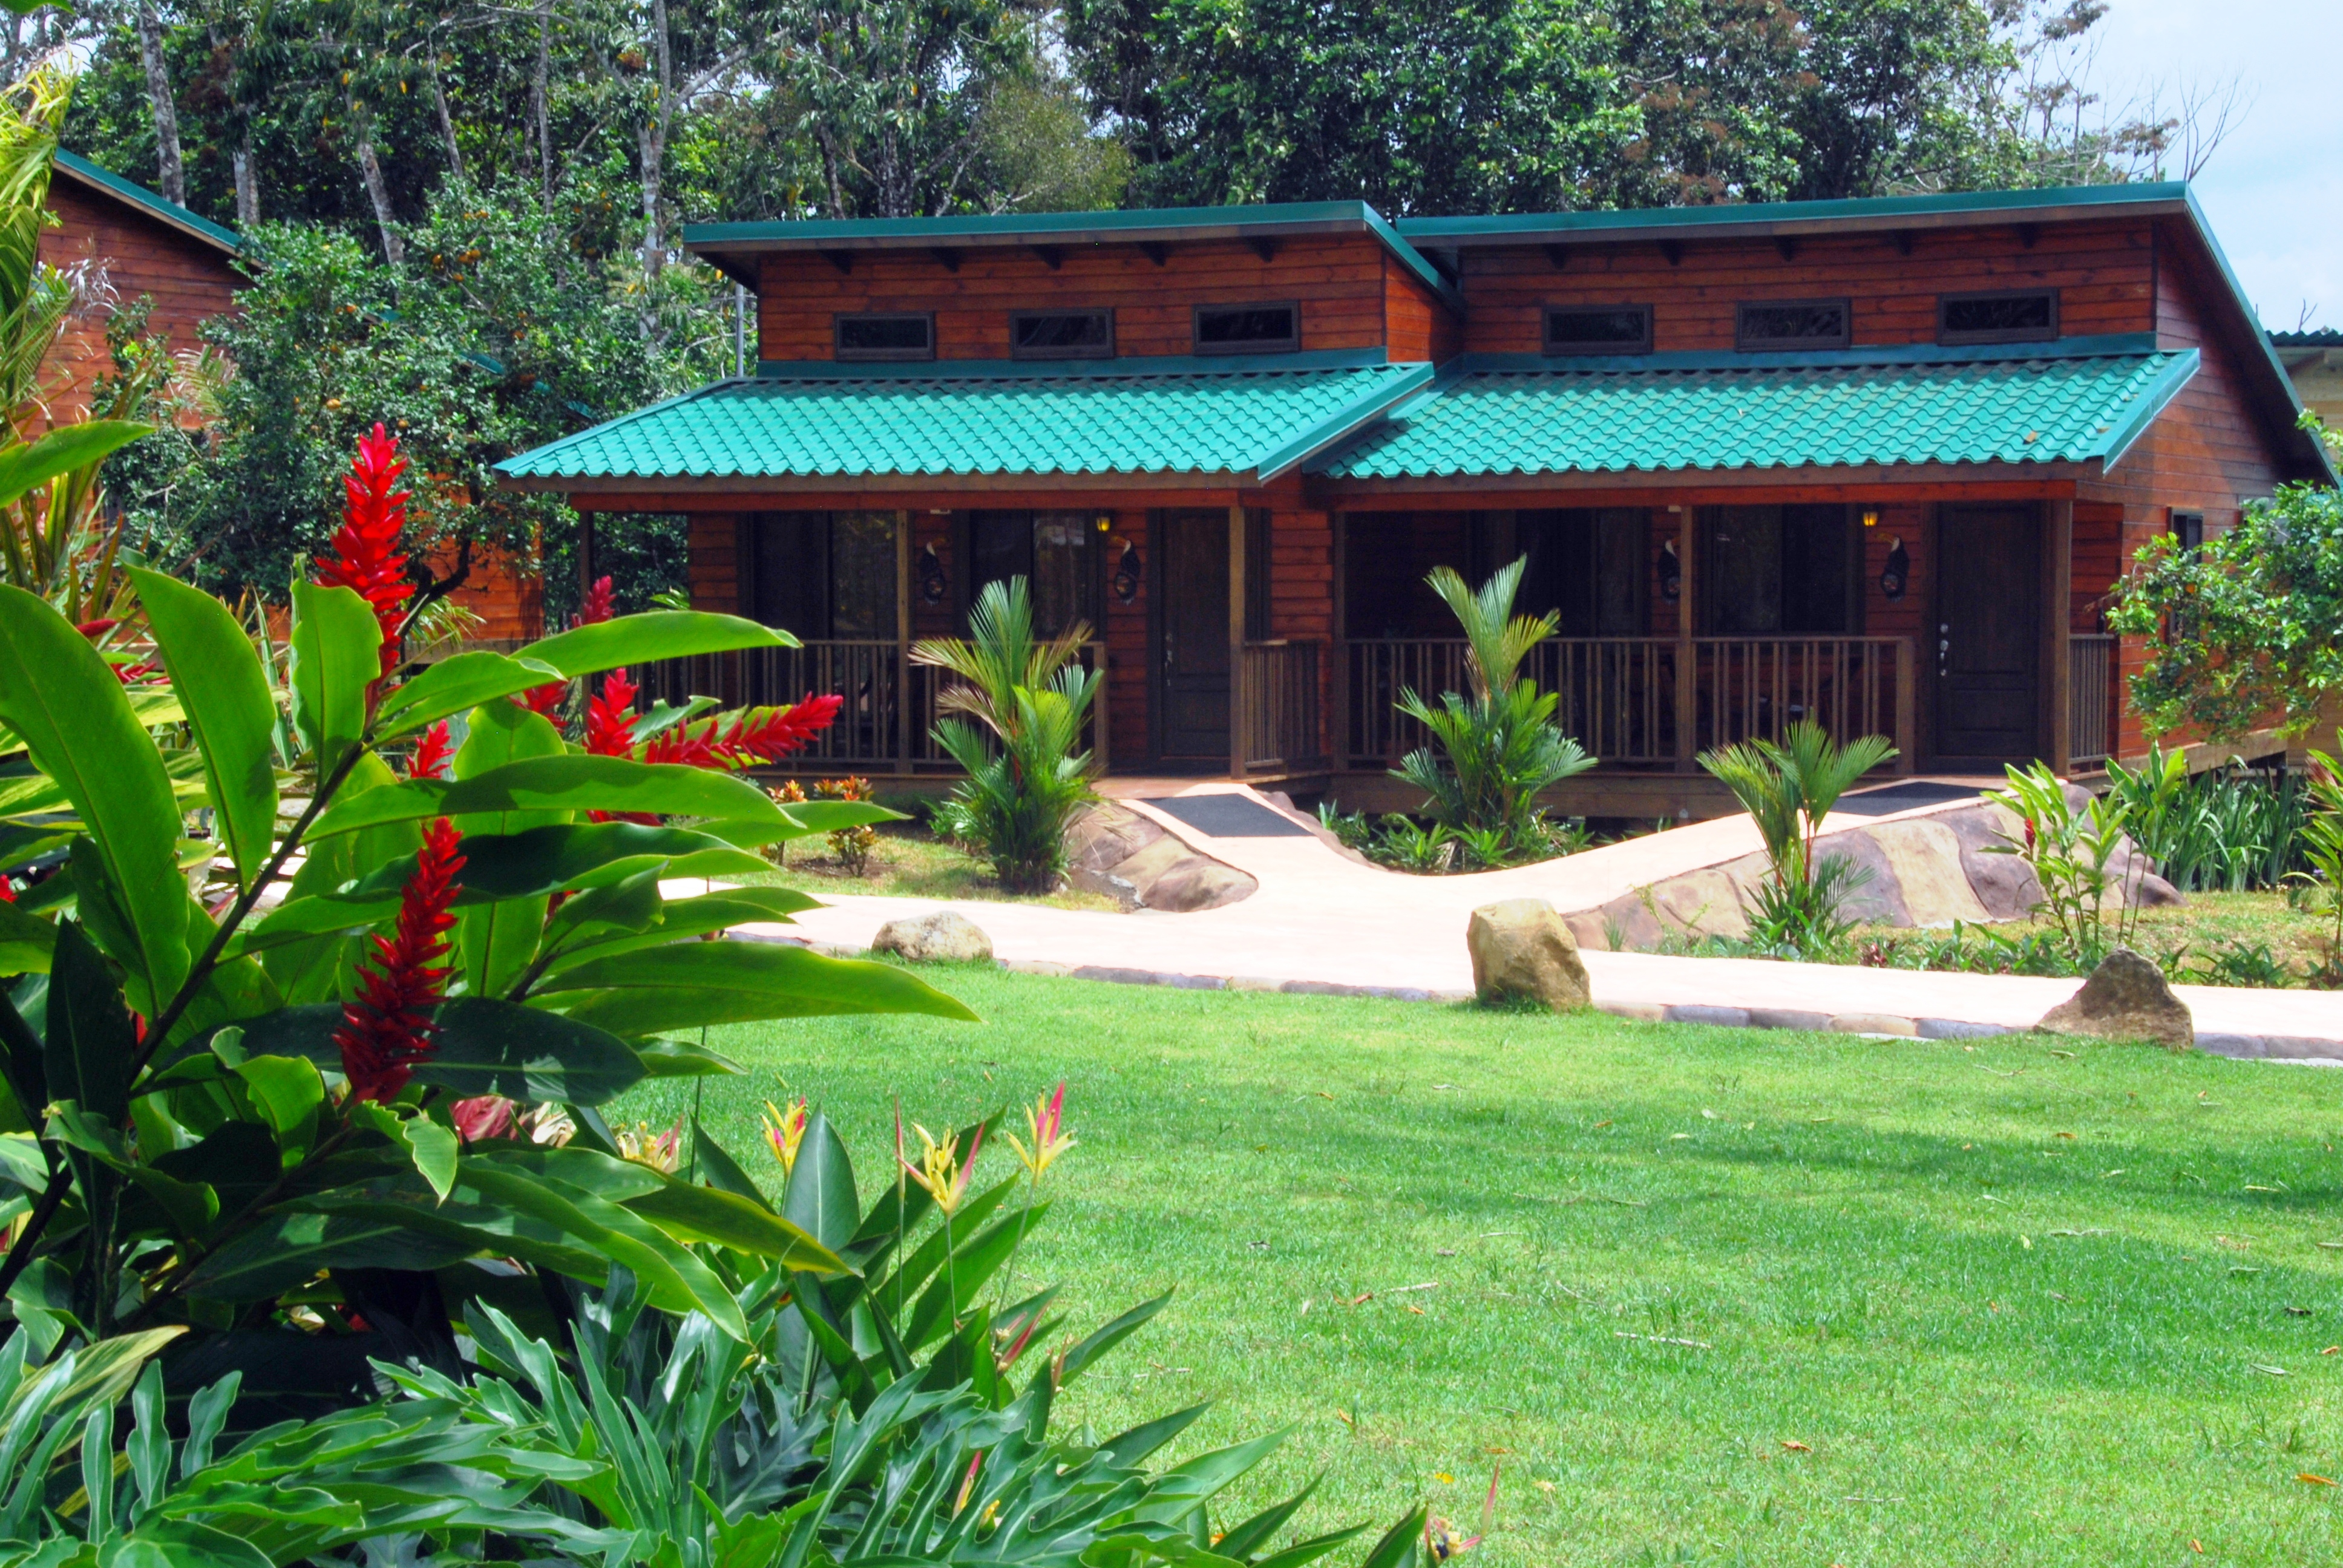 Blue River Estate: A Chance to Own Land & Home in Paradise